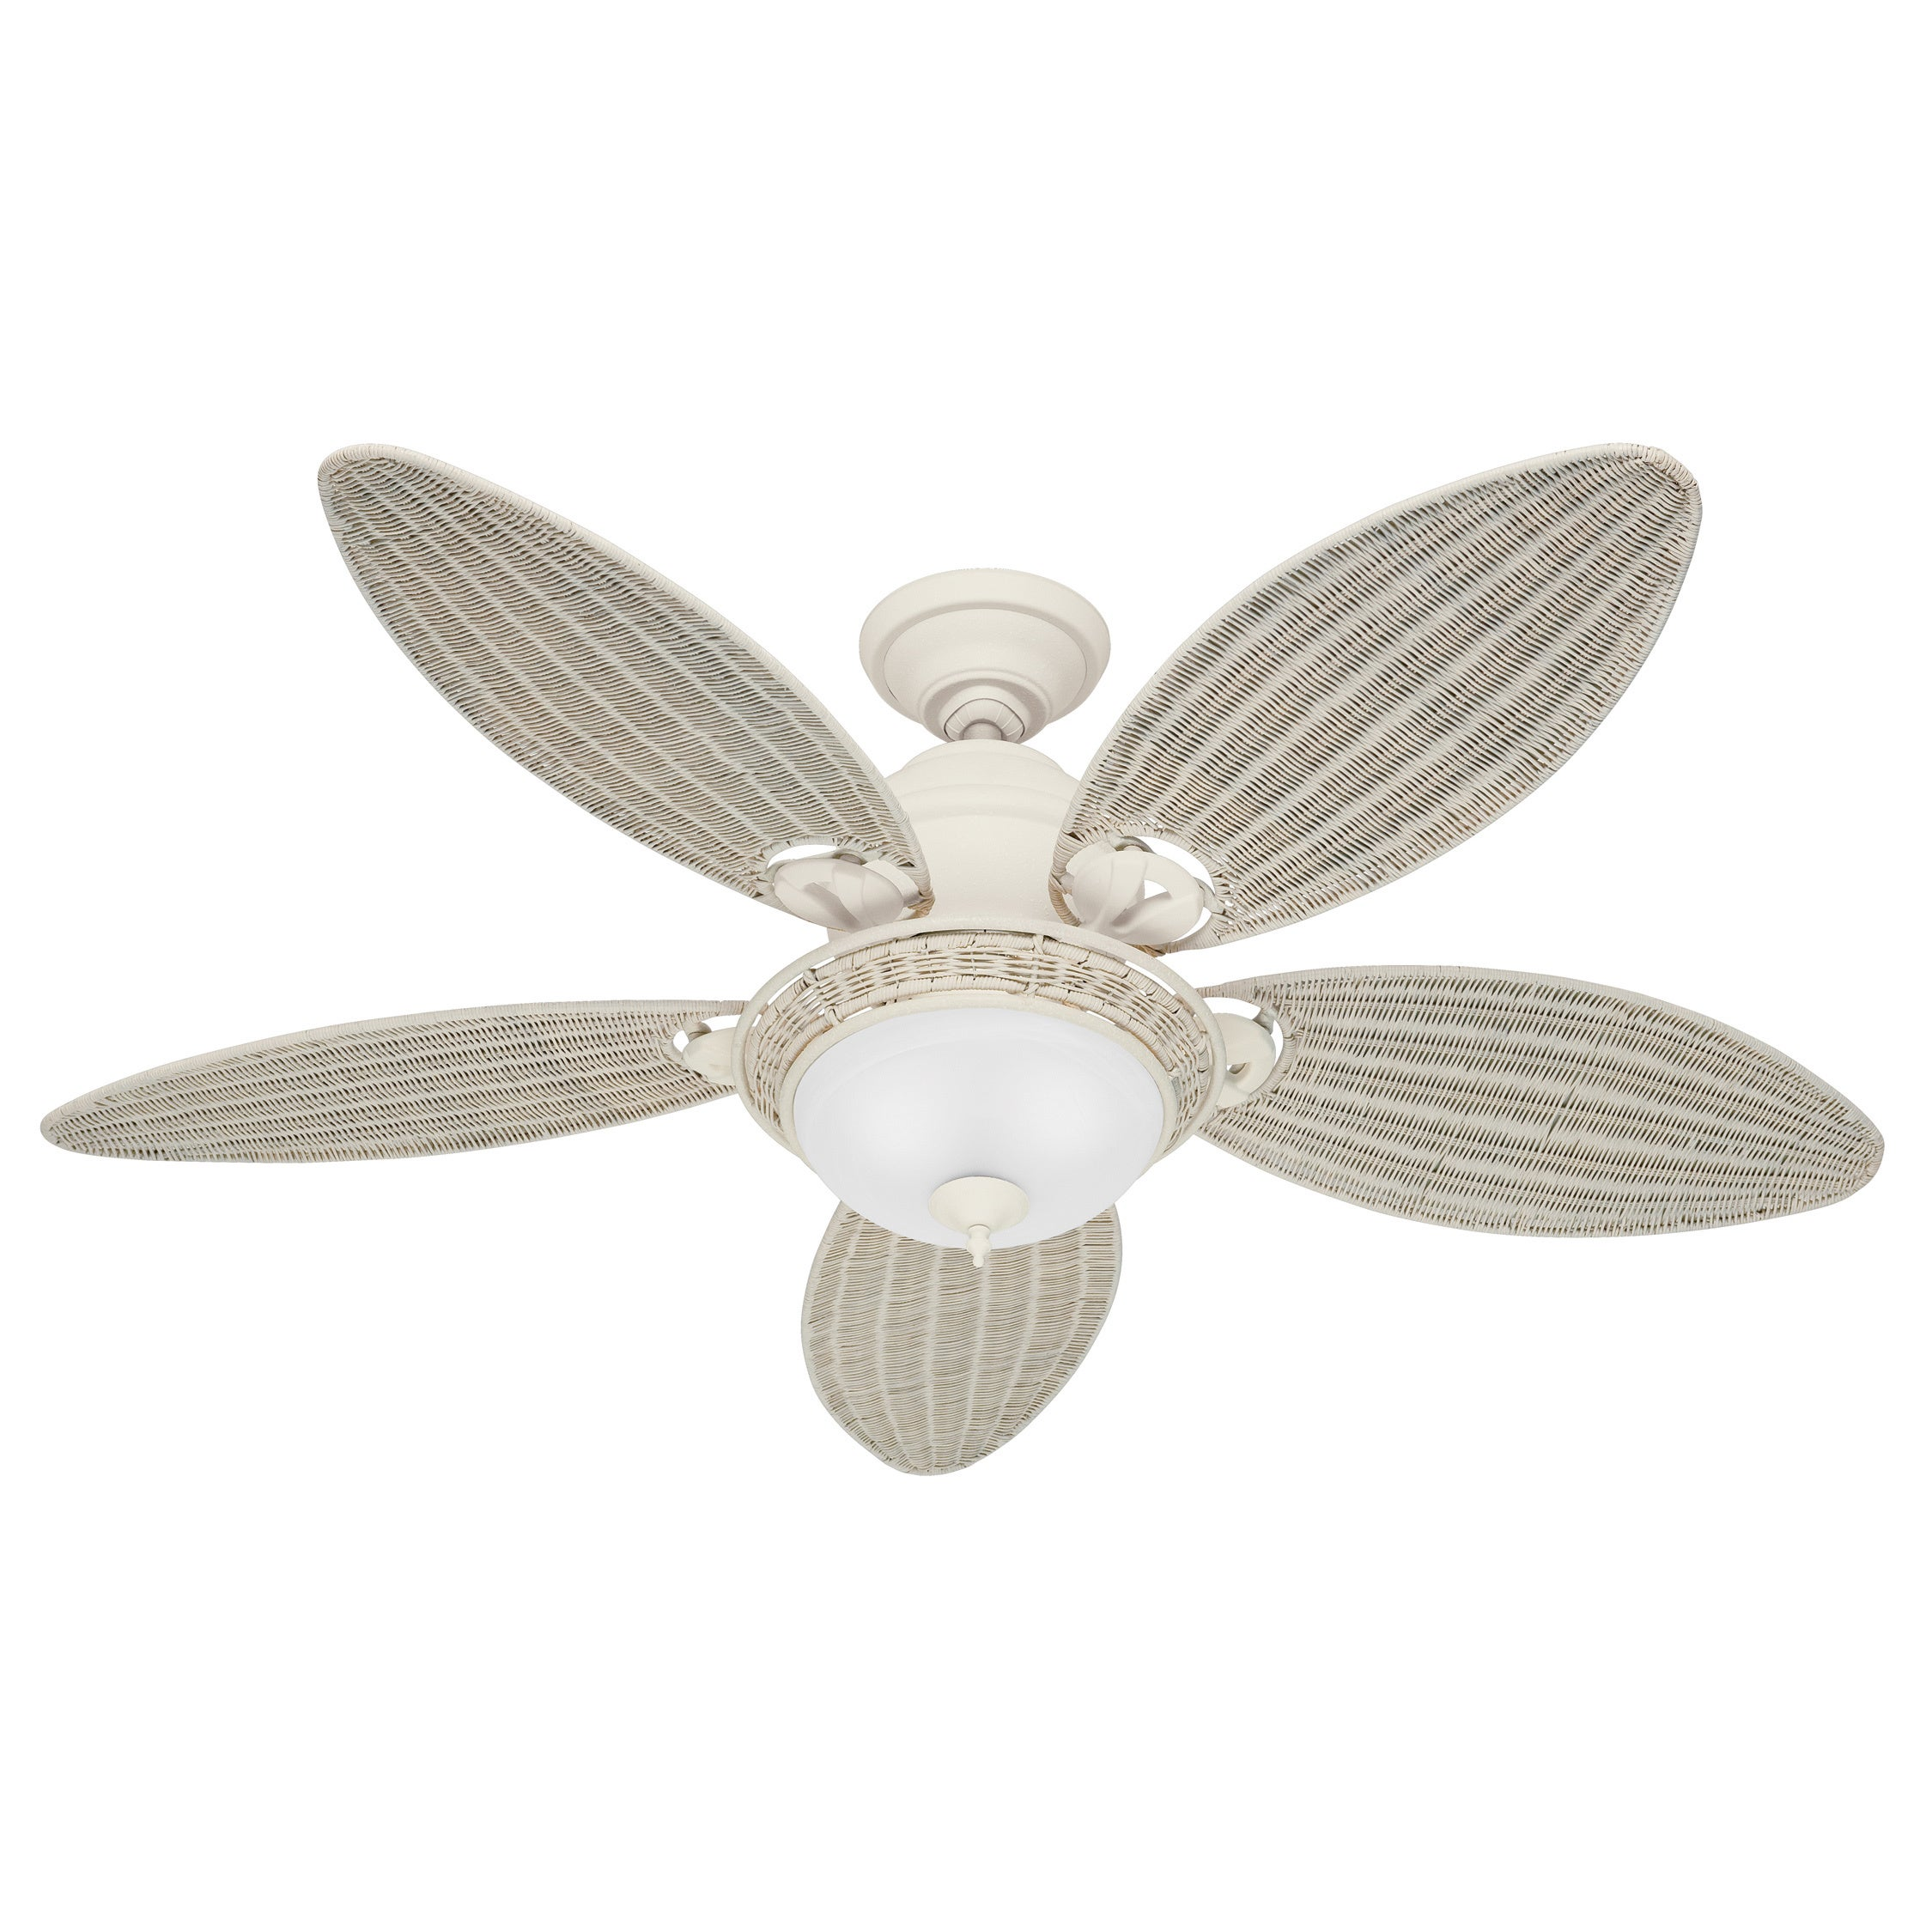 white fans blade rainier amber glass item ceiling magnifying image fan capitol bronze inch hunter and cased finish in shown cfm